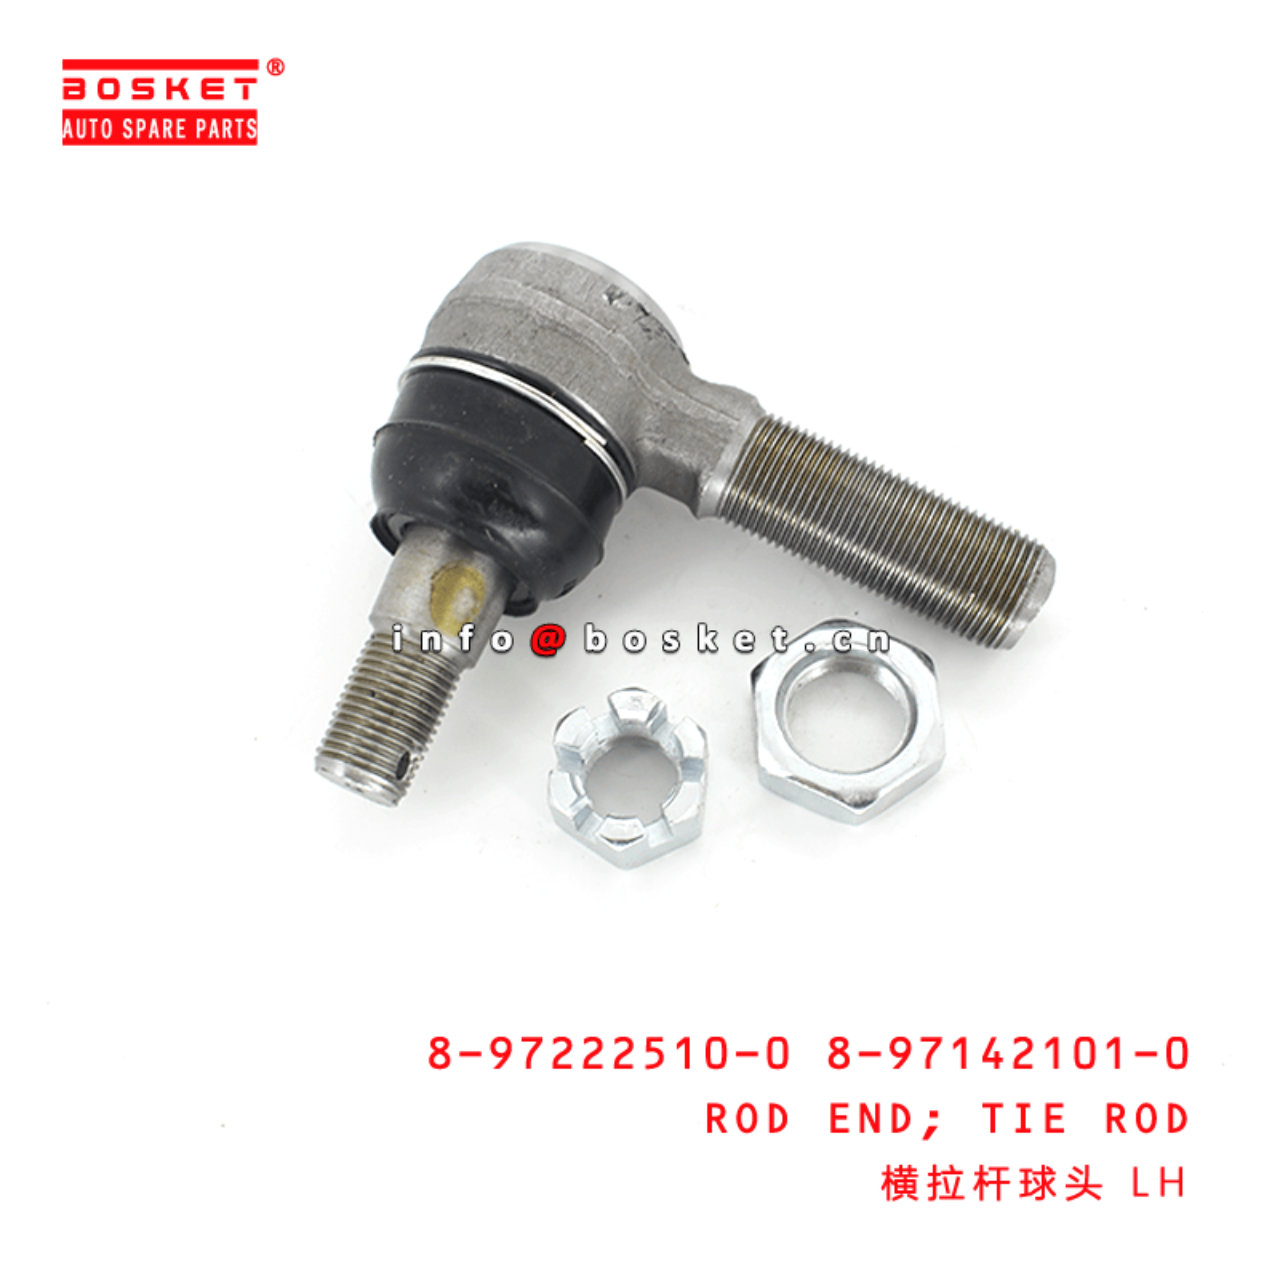 8-97222510-0 8-97142101-0 Tie Rod Rod End 8972225100 8971421010 Suitable for ISUZU NKR 100P 4JB1 4JH